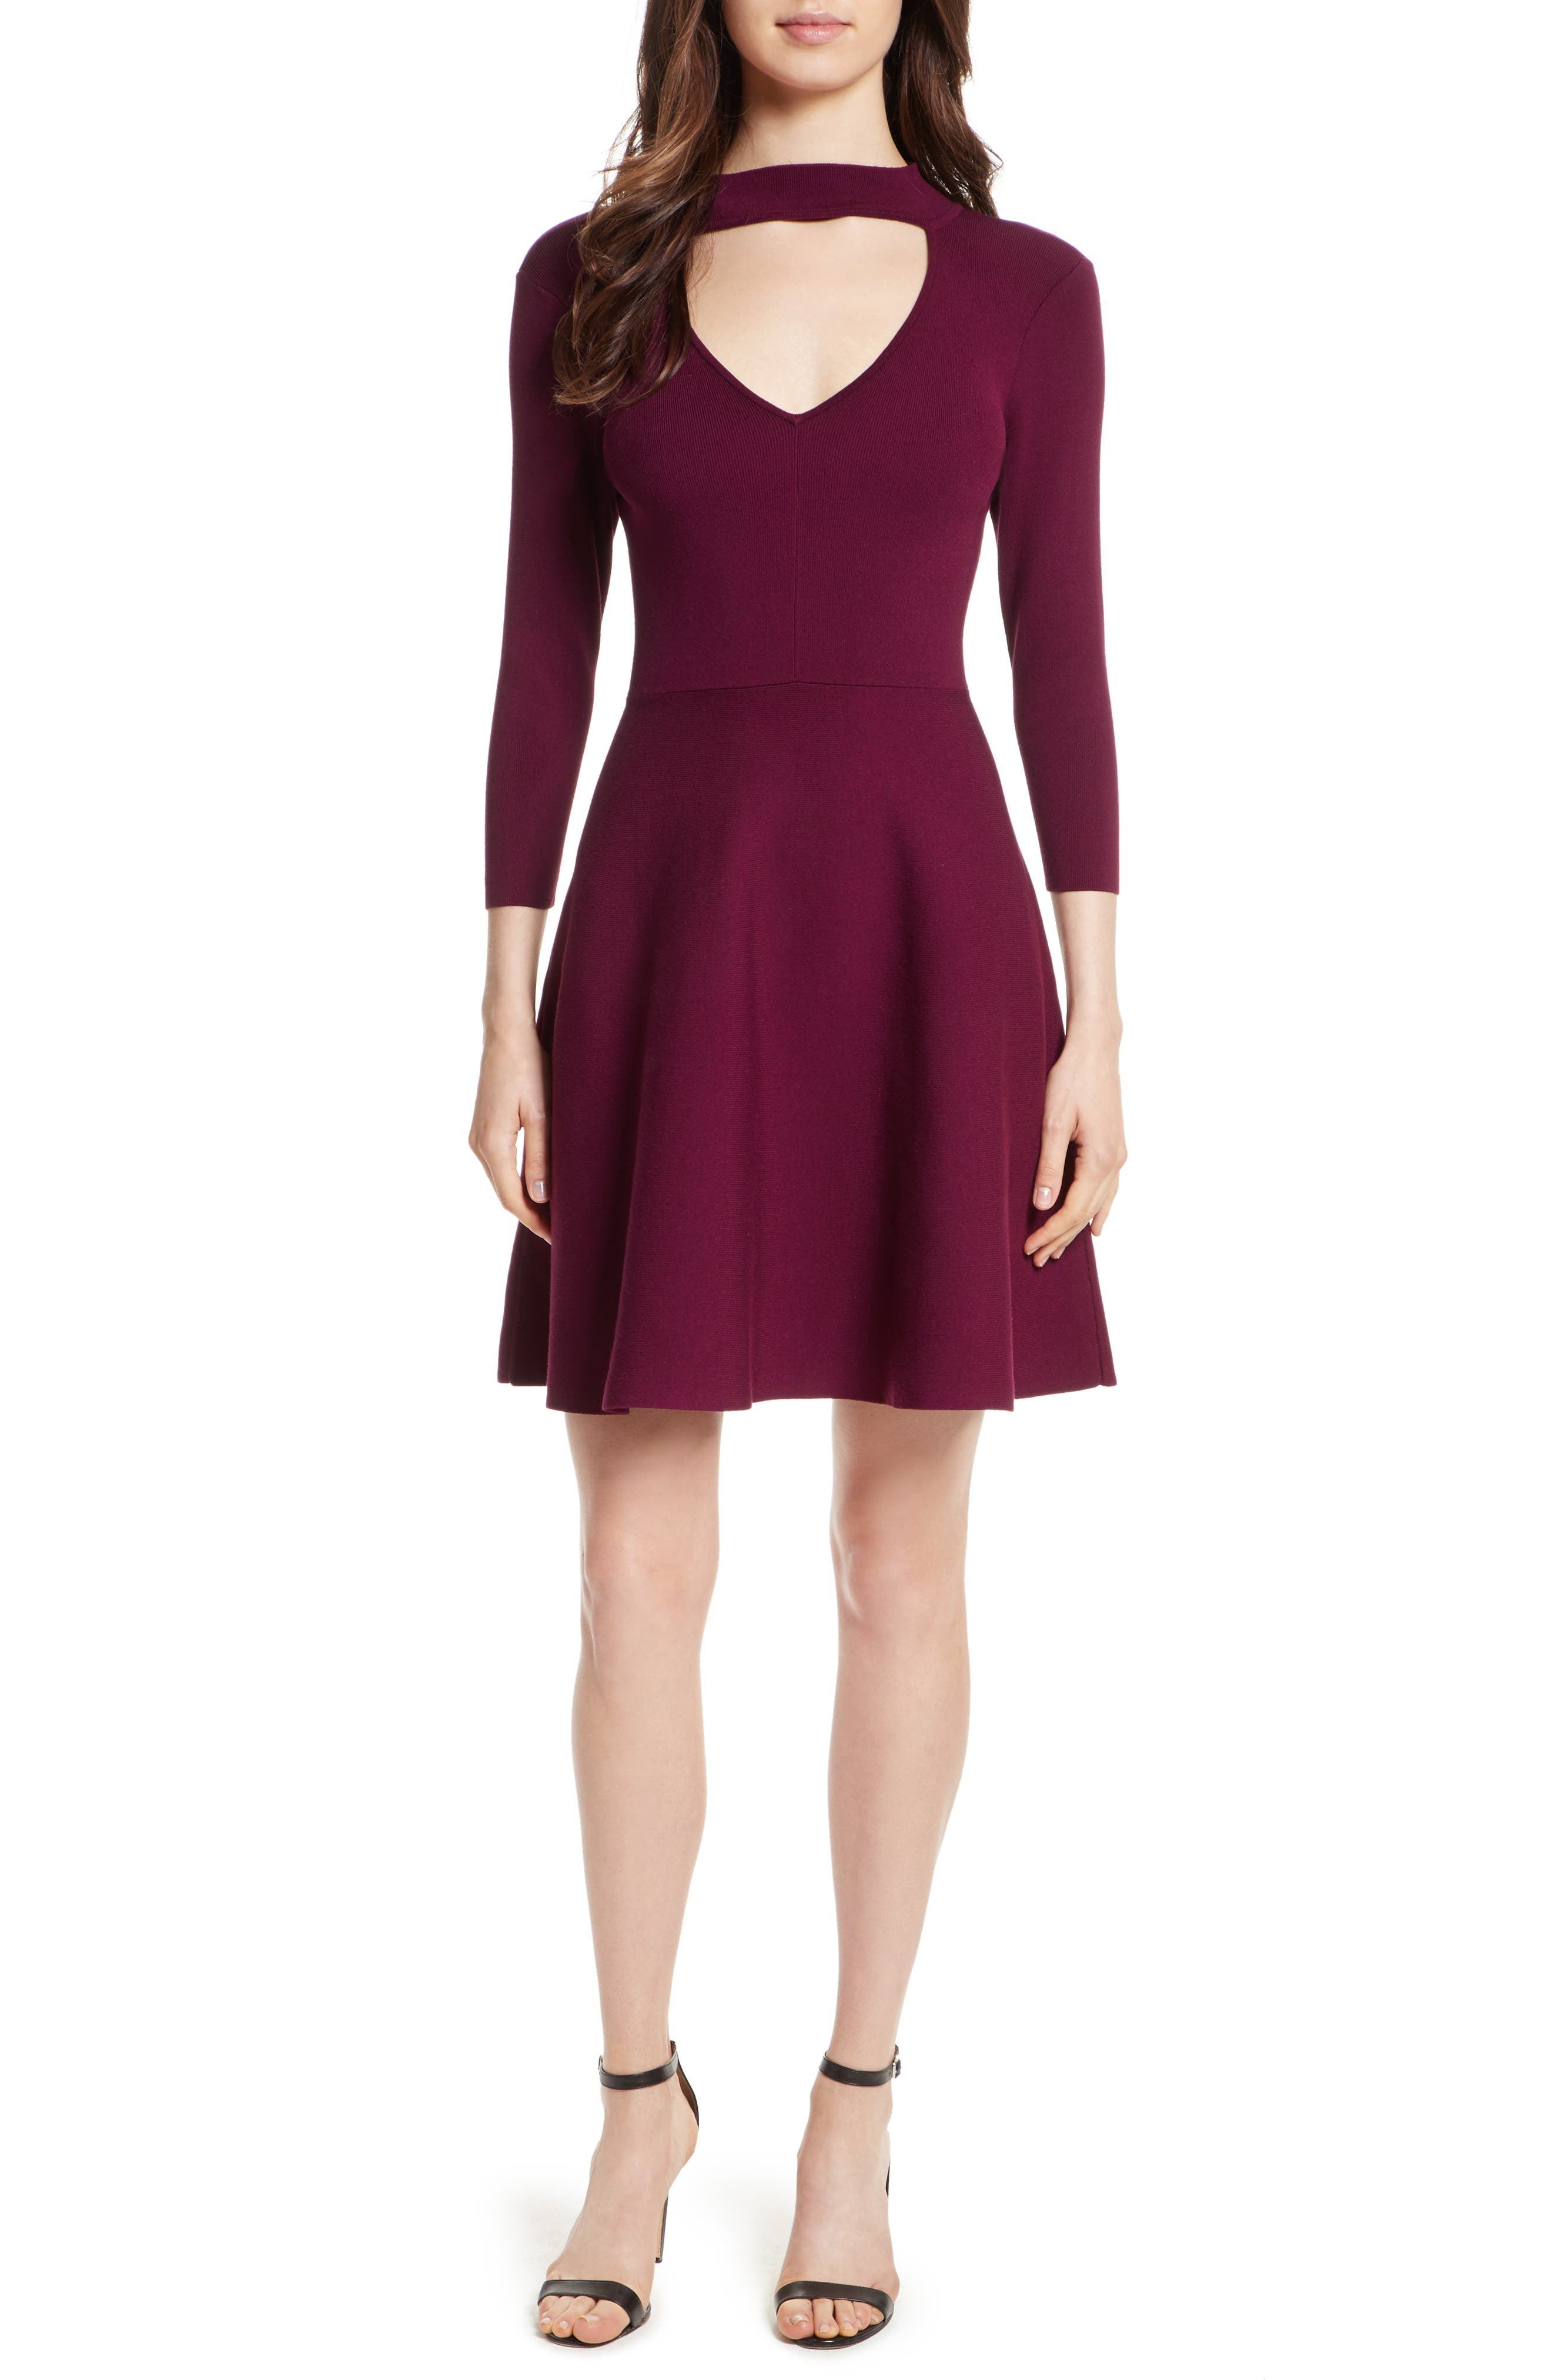 Milly Choker Collar Fit & Flare Stretch Knit Dress